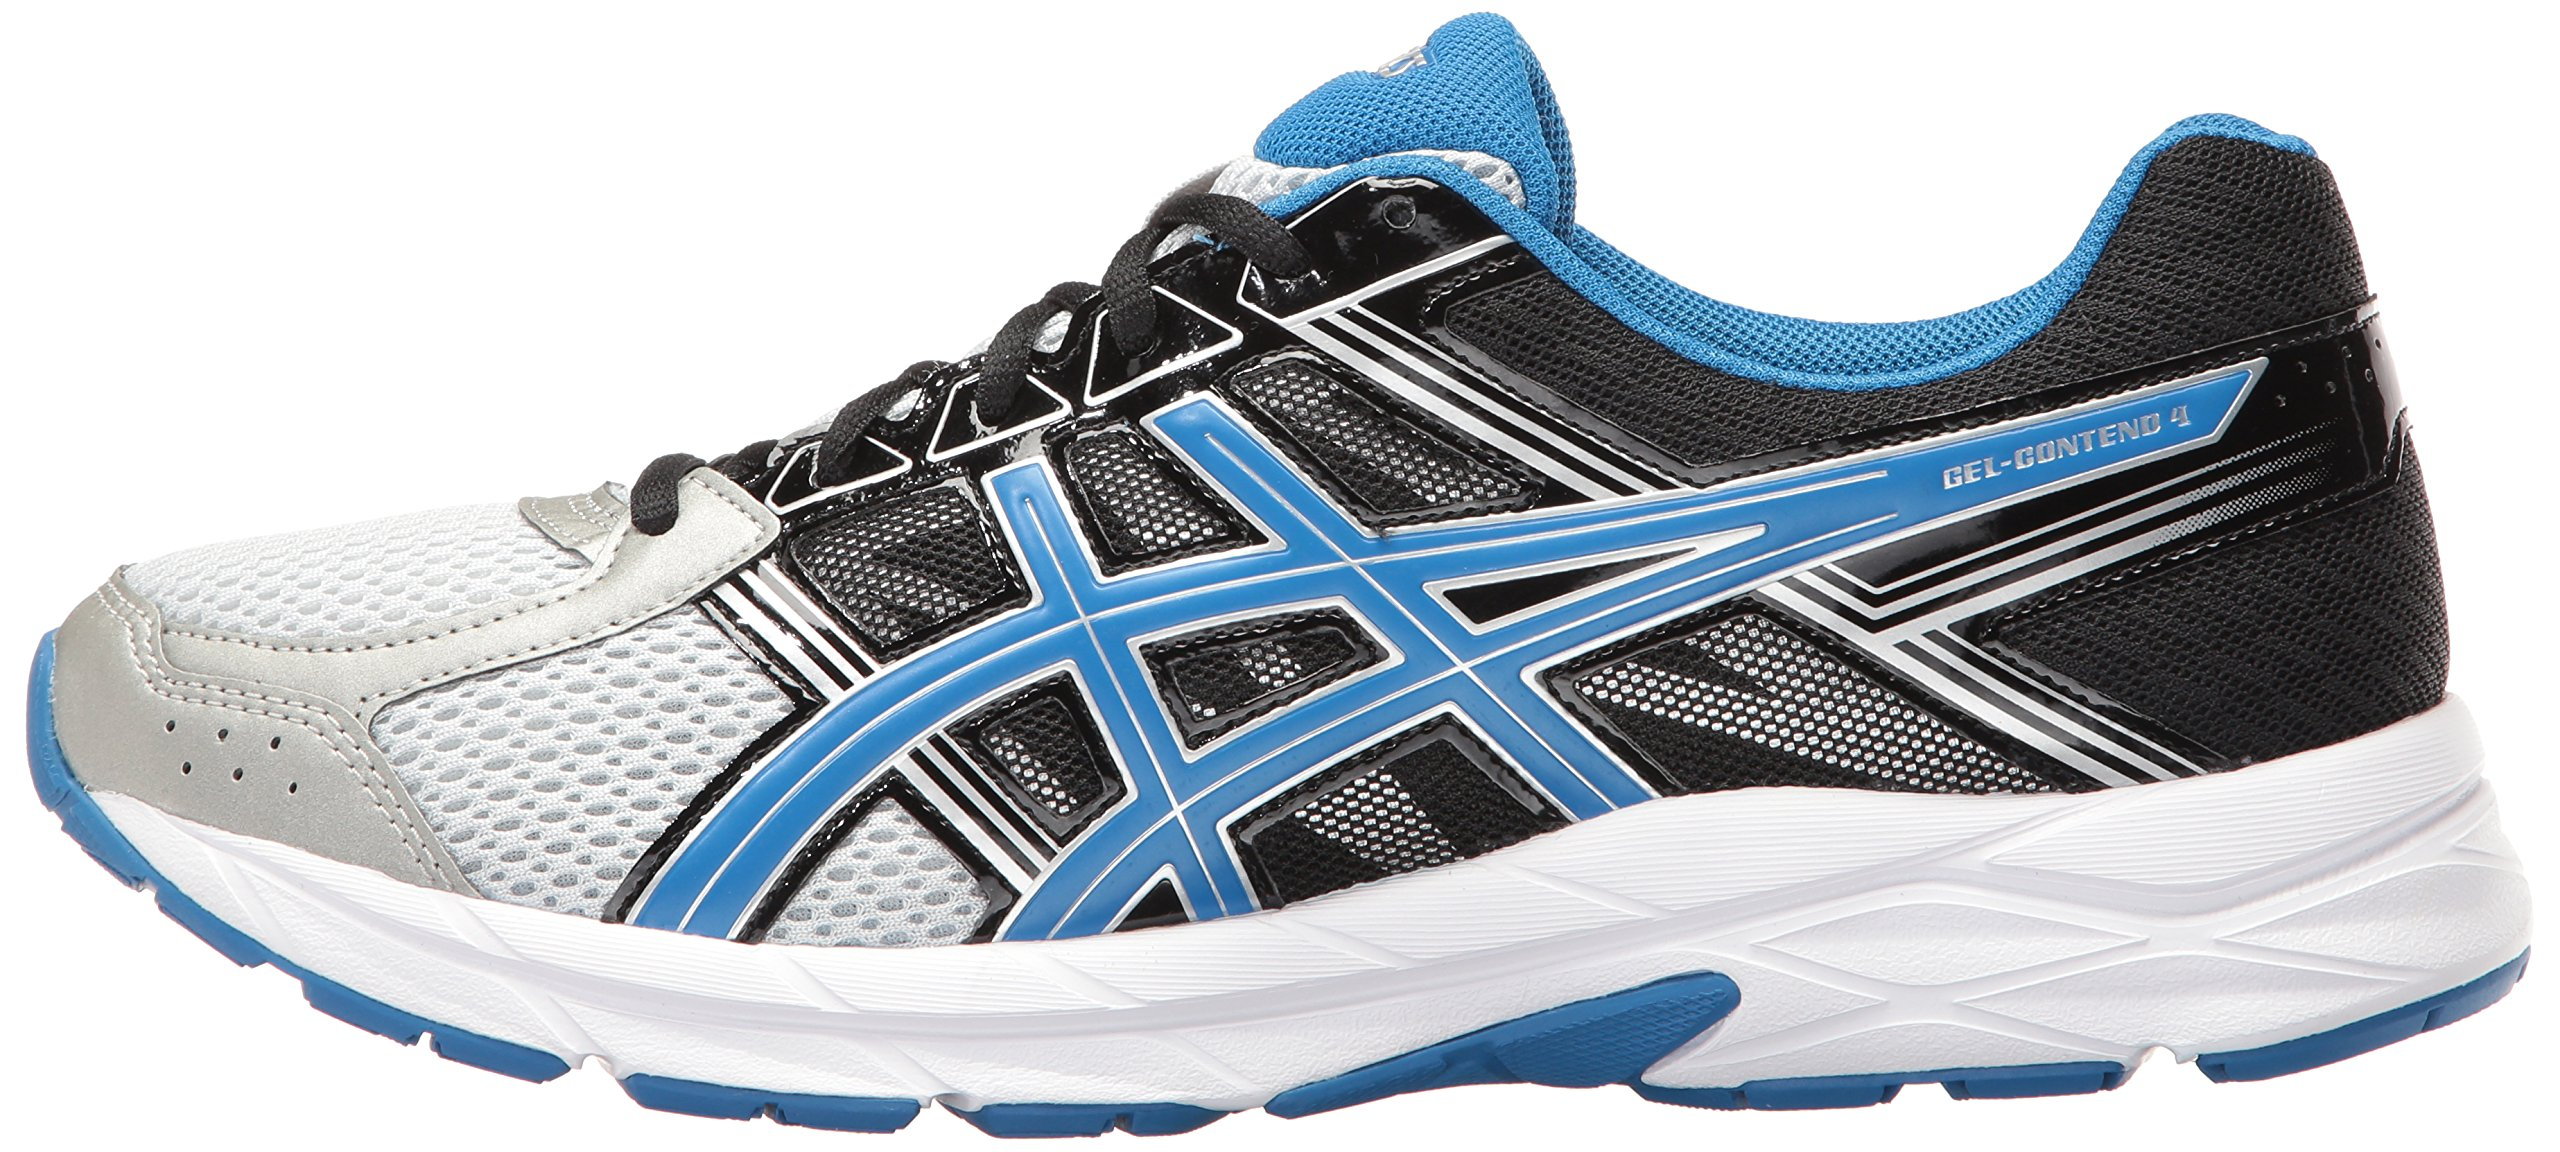 ASICS Men's Gel-Contend 4 Running Shoe, Silver/Classic Blue/Black, 7.5 M US by ASICS (Image #5)